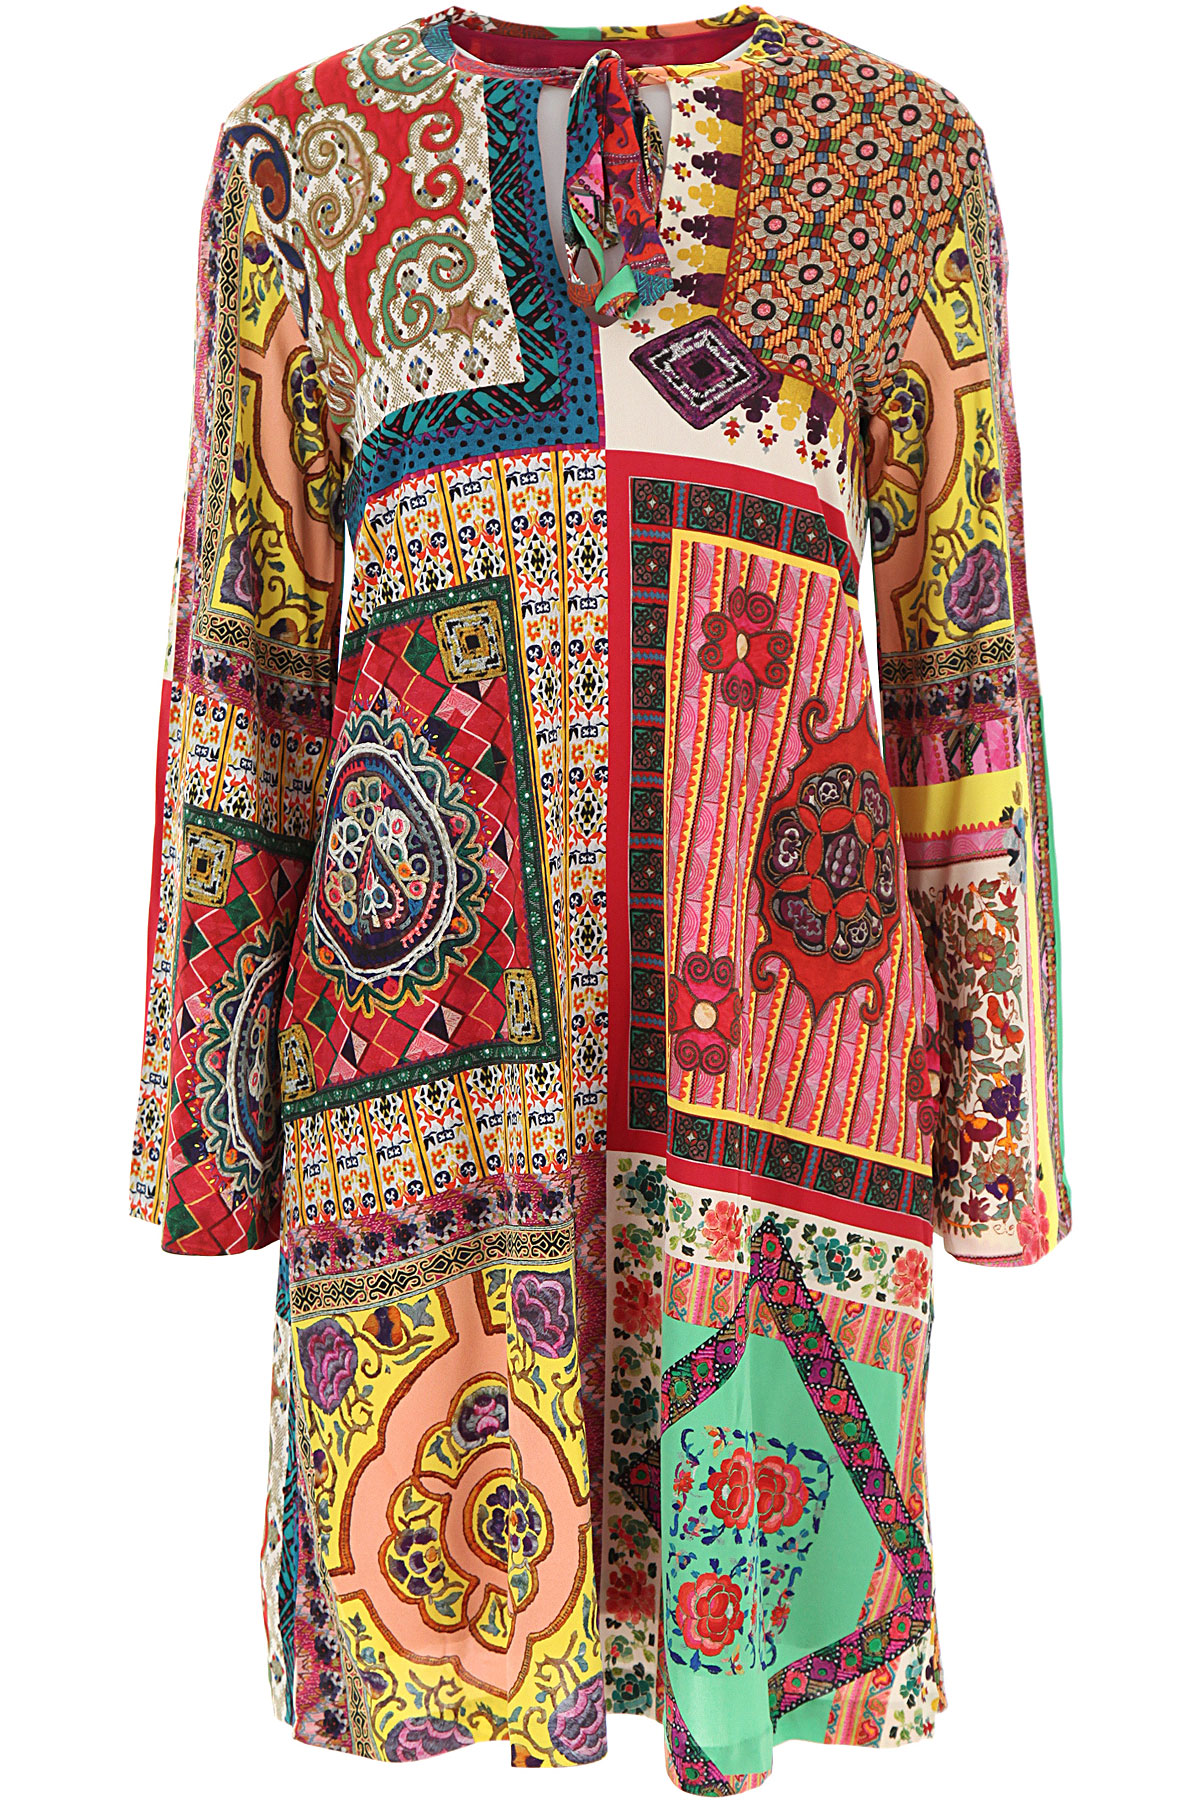 Etro Dress for Women, Evening Cocktail Party On Sale, Multicolor, Viscose, 2019, 4 6 8